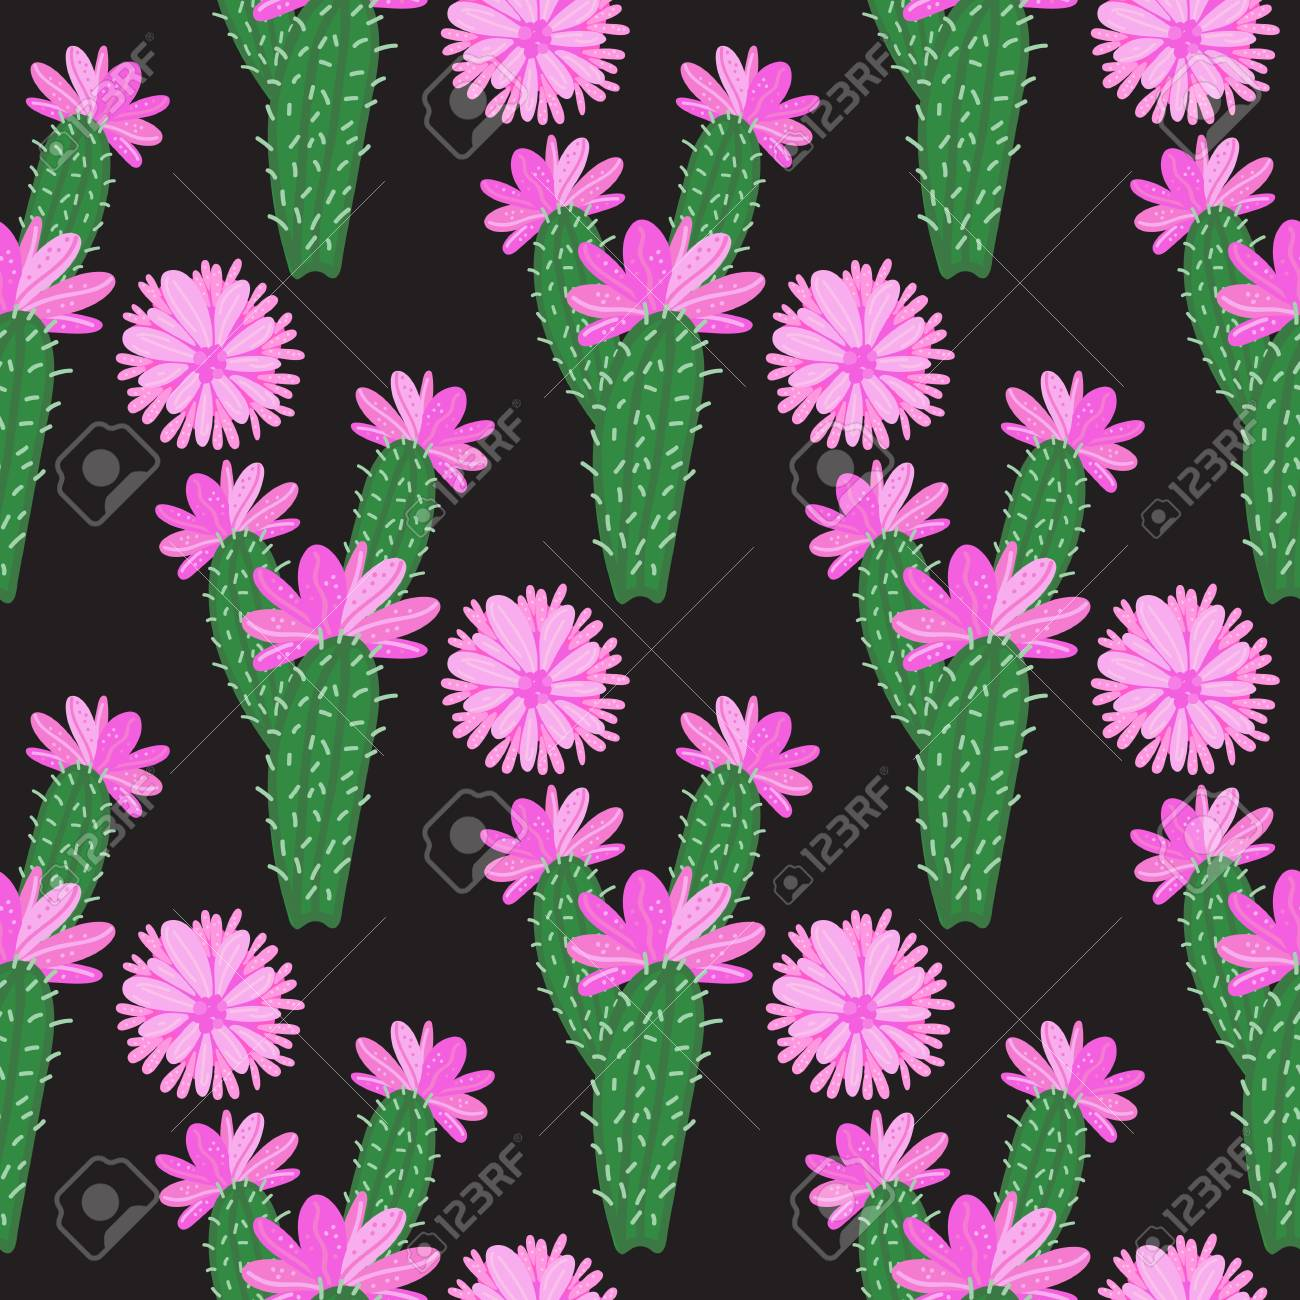 Vector Cactus With Pink Flowers Seamless Pattern Royalty Free